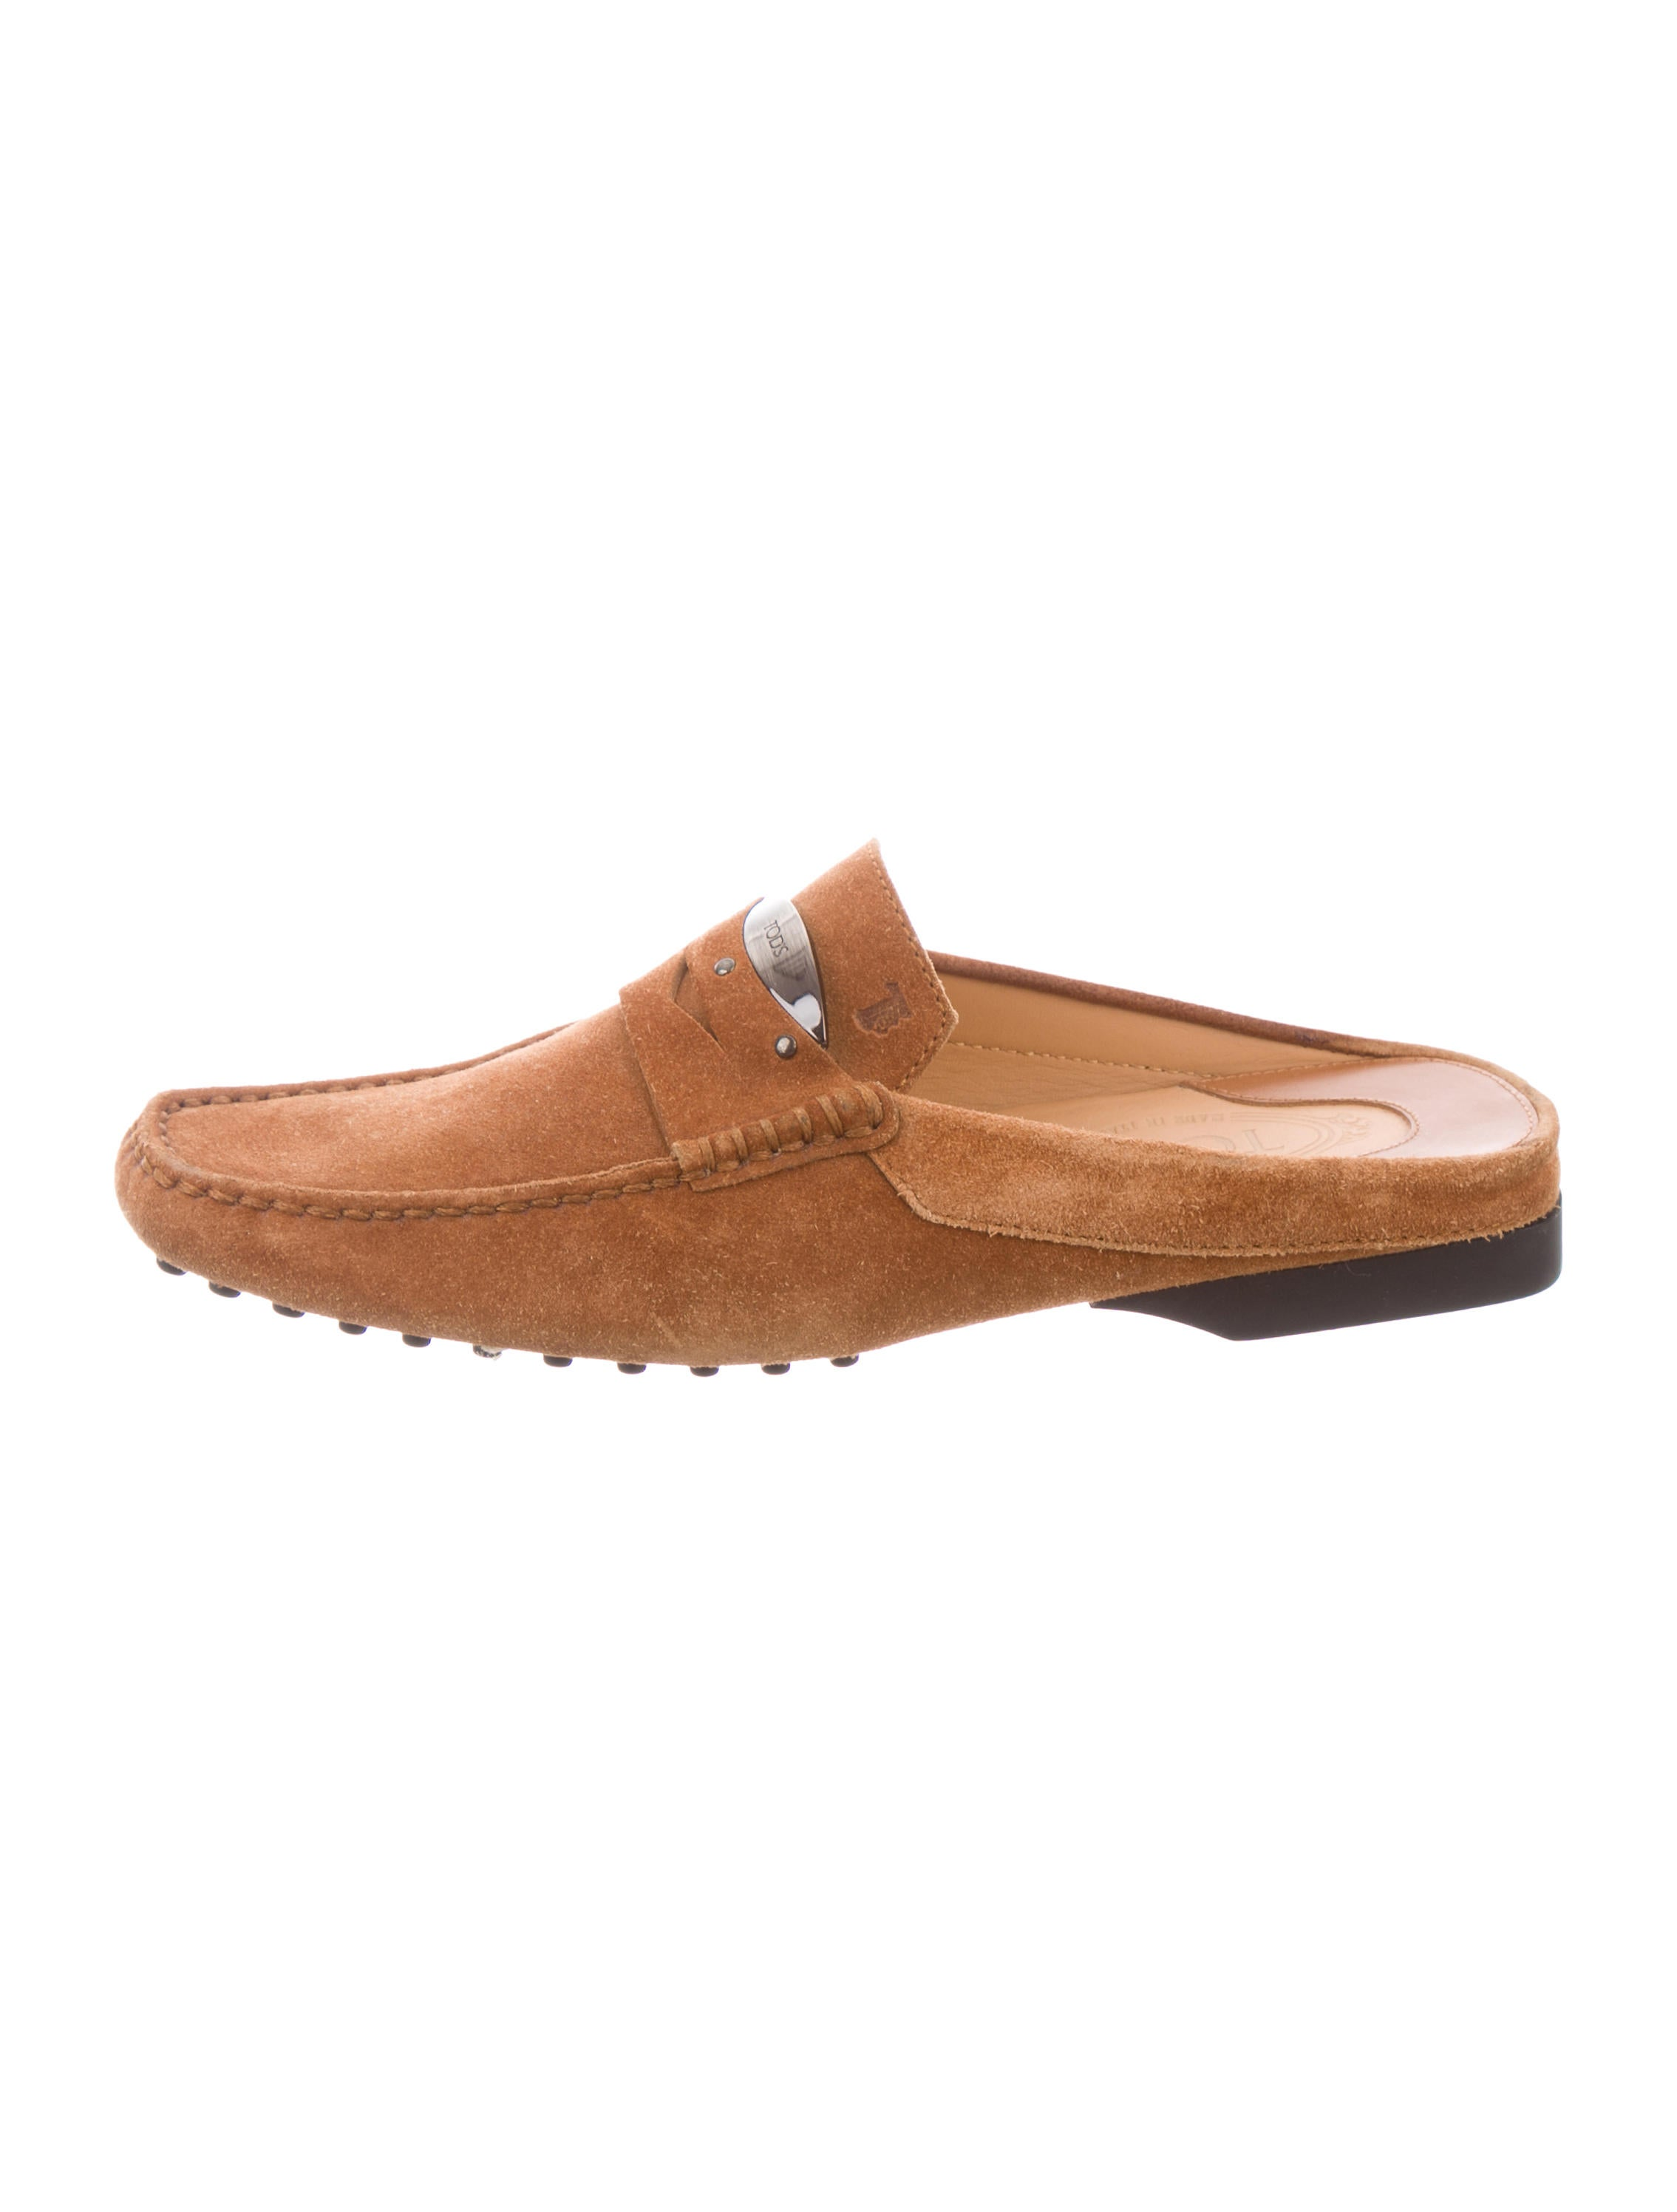 sale low shipping fee Tod's Square-Toe Loafer Mules cheap price buy discount many kinds of for sale eArjyRo6